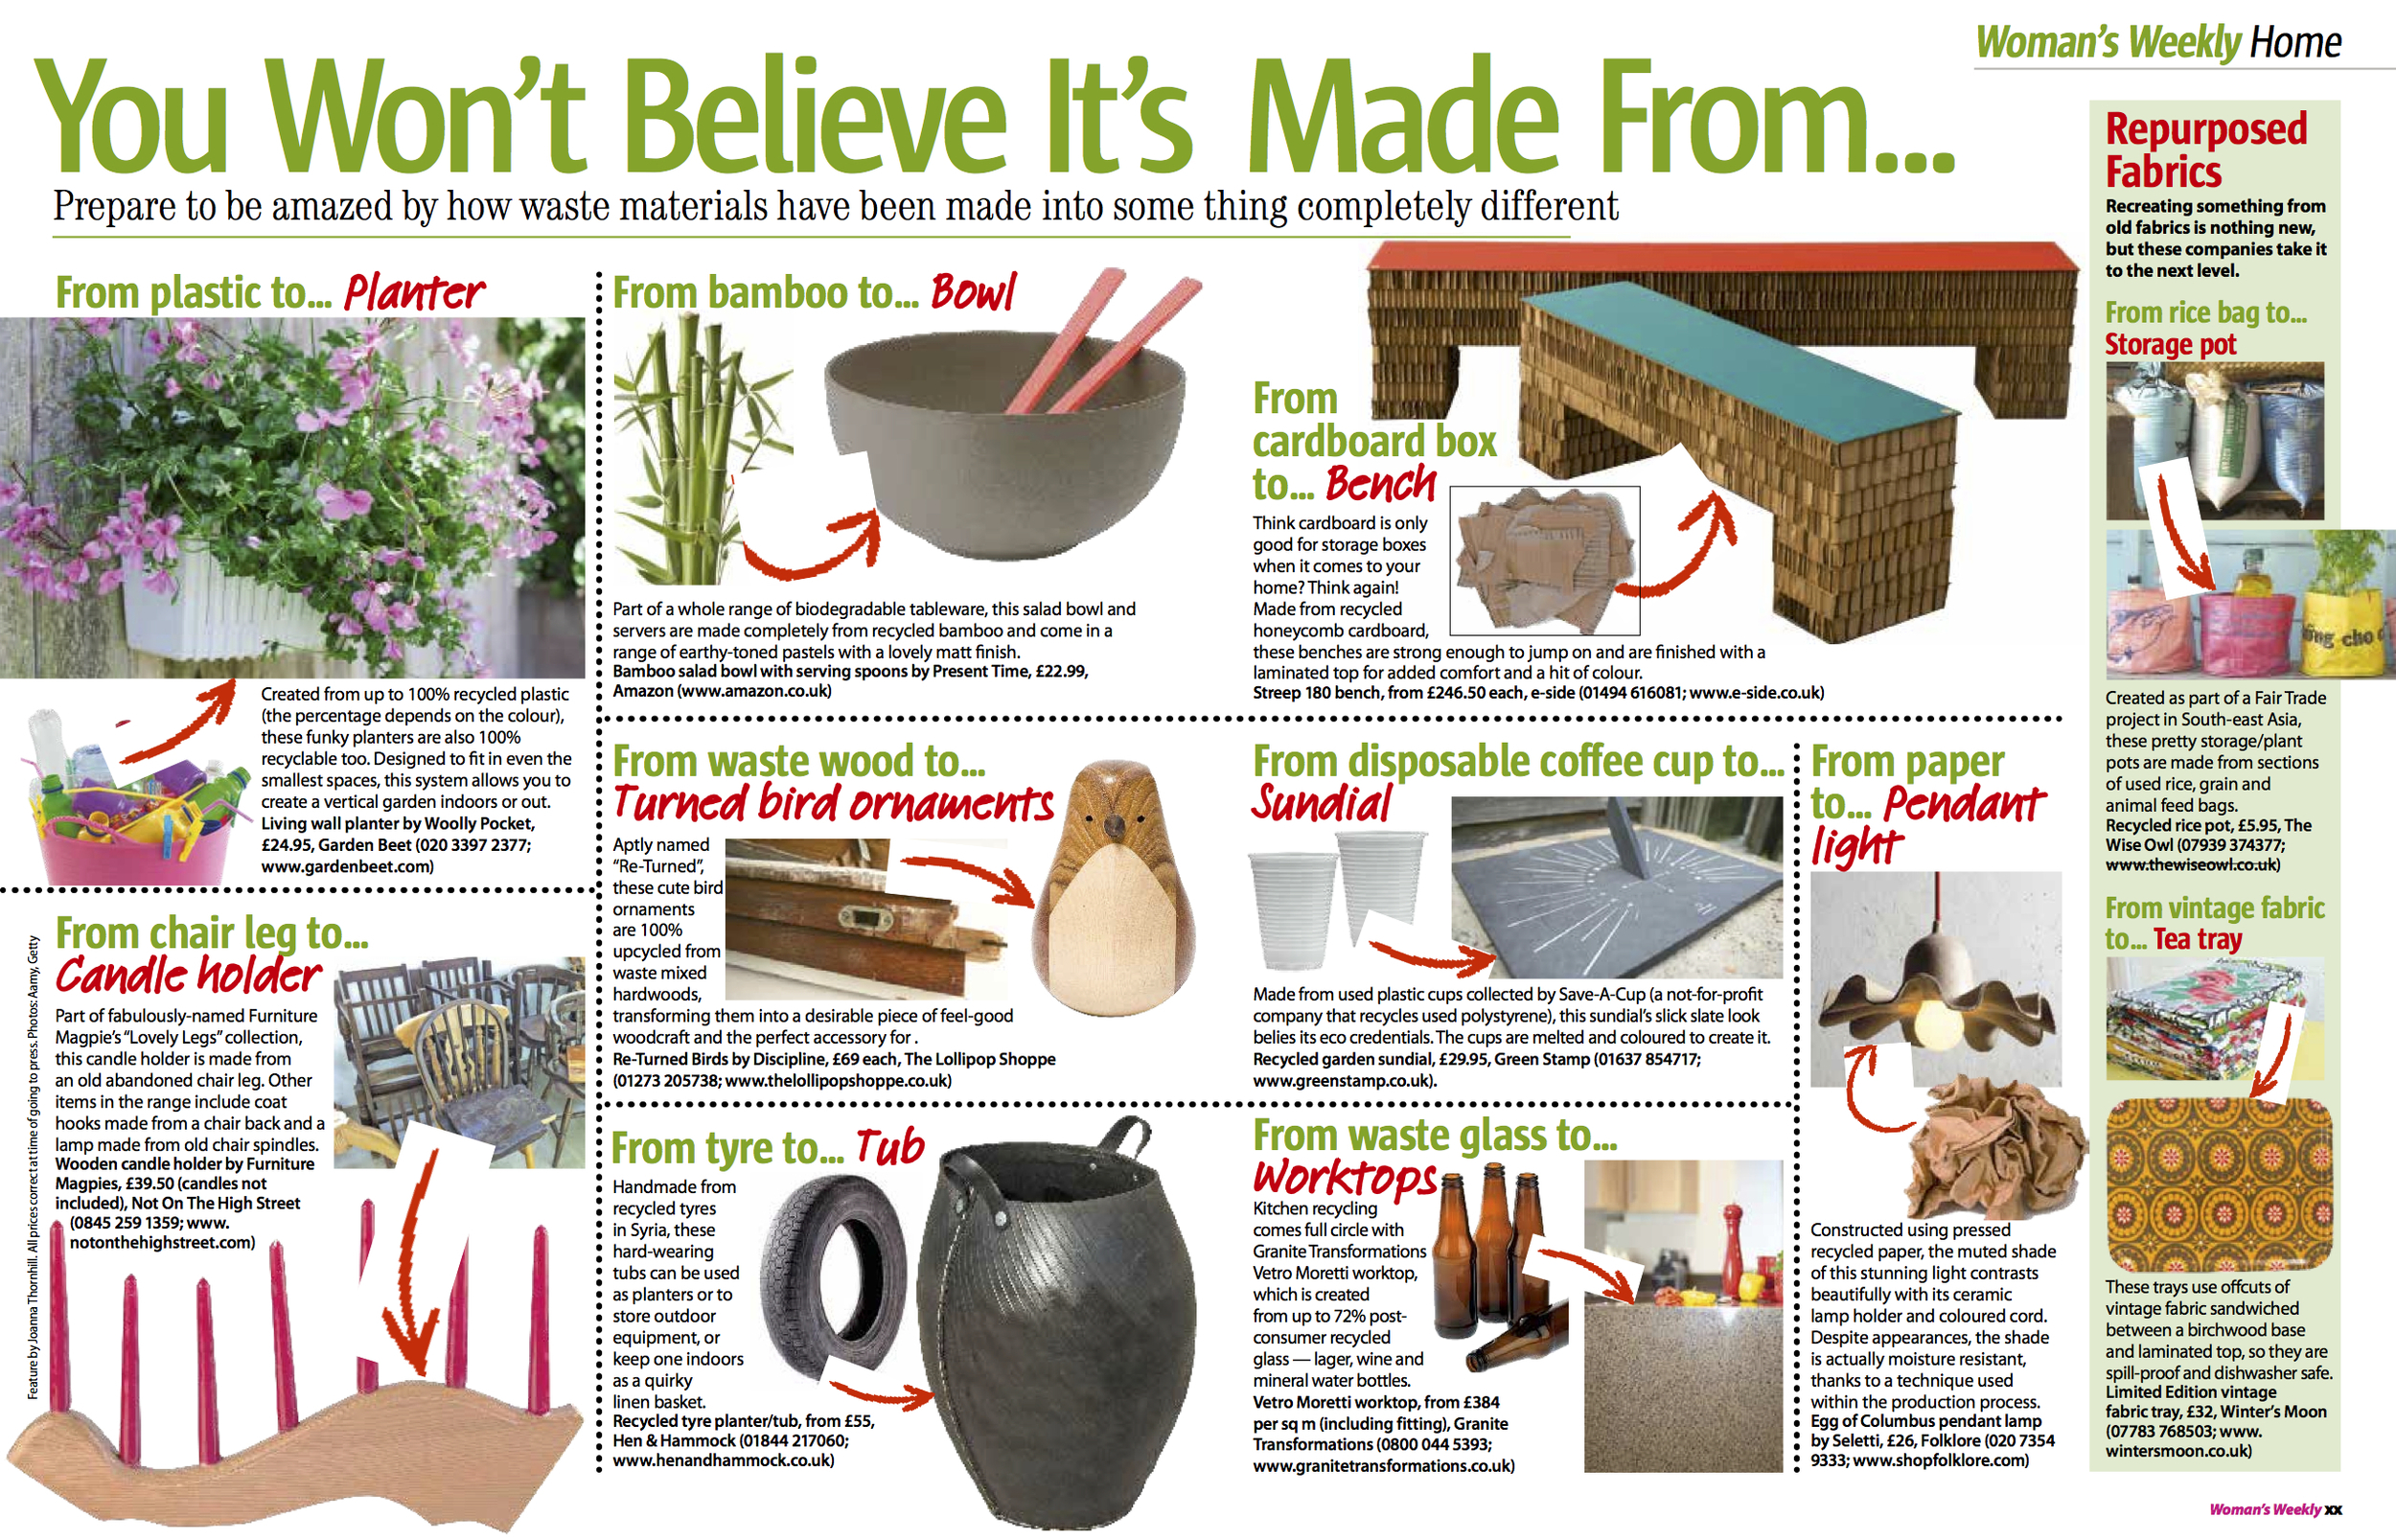 Woman's Weekly You Won't Believe It's Made From... feature by Joanna Thornhill,  May 14 2013.jpeg